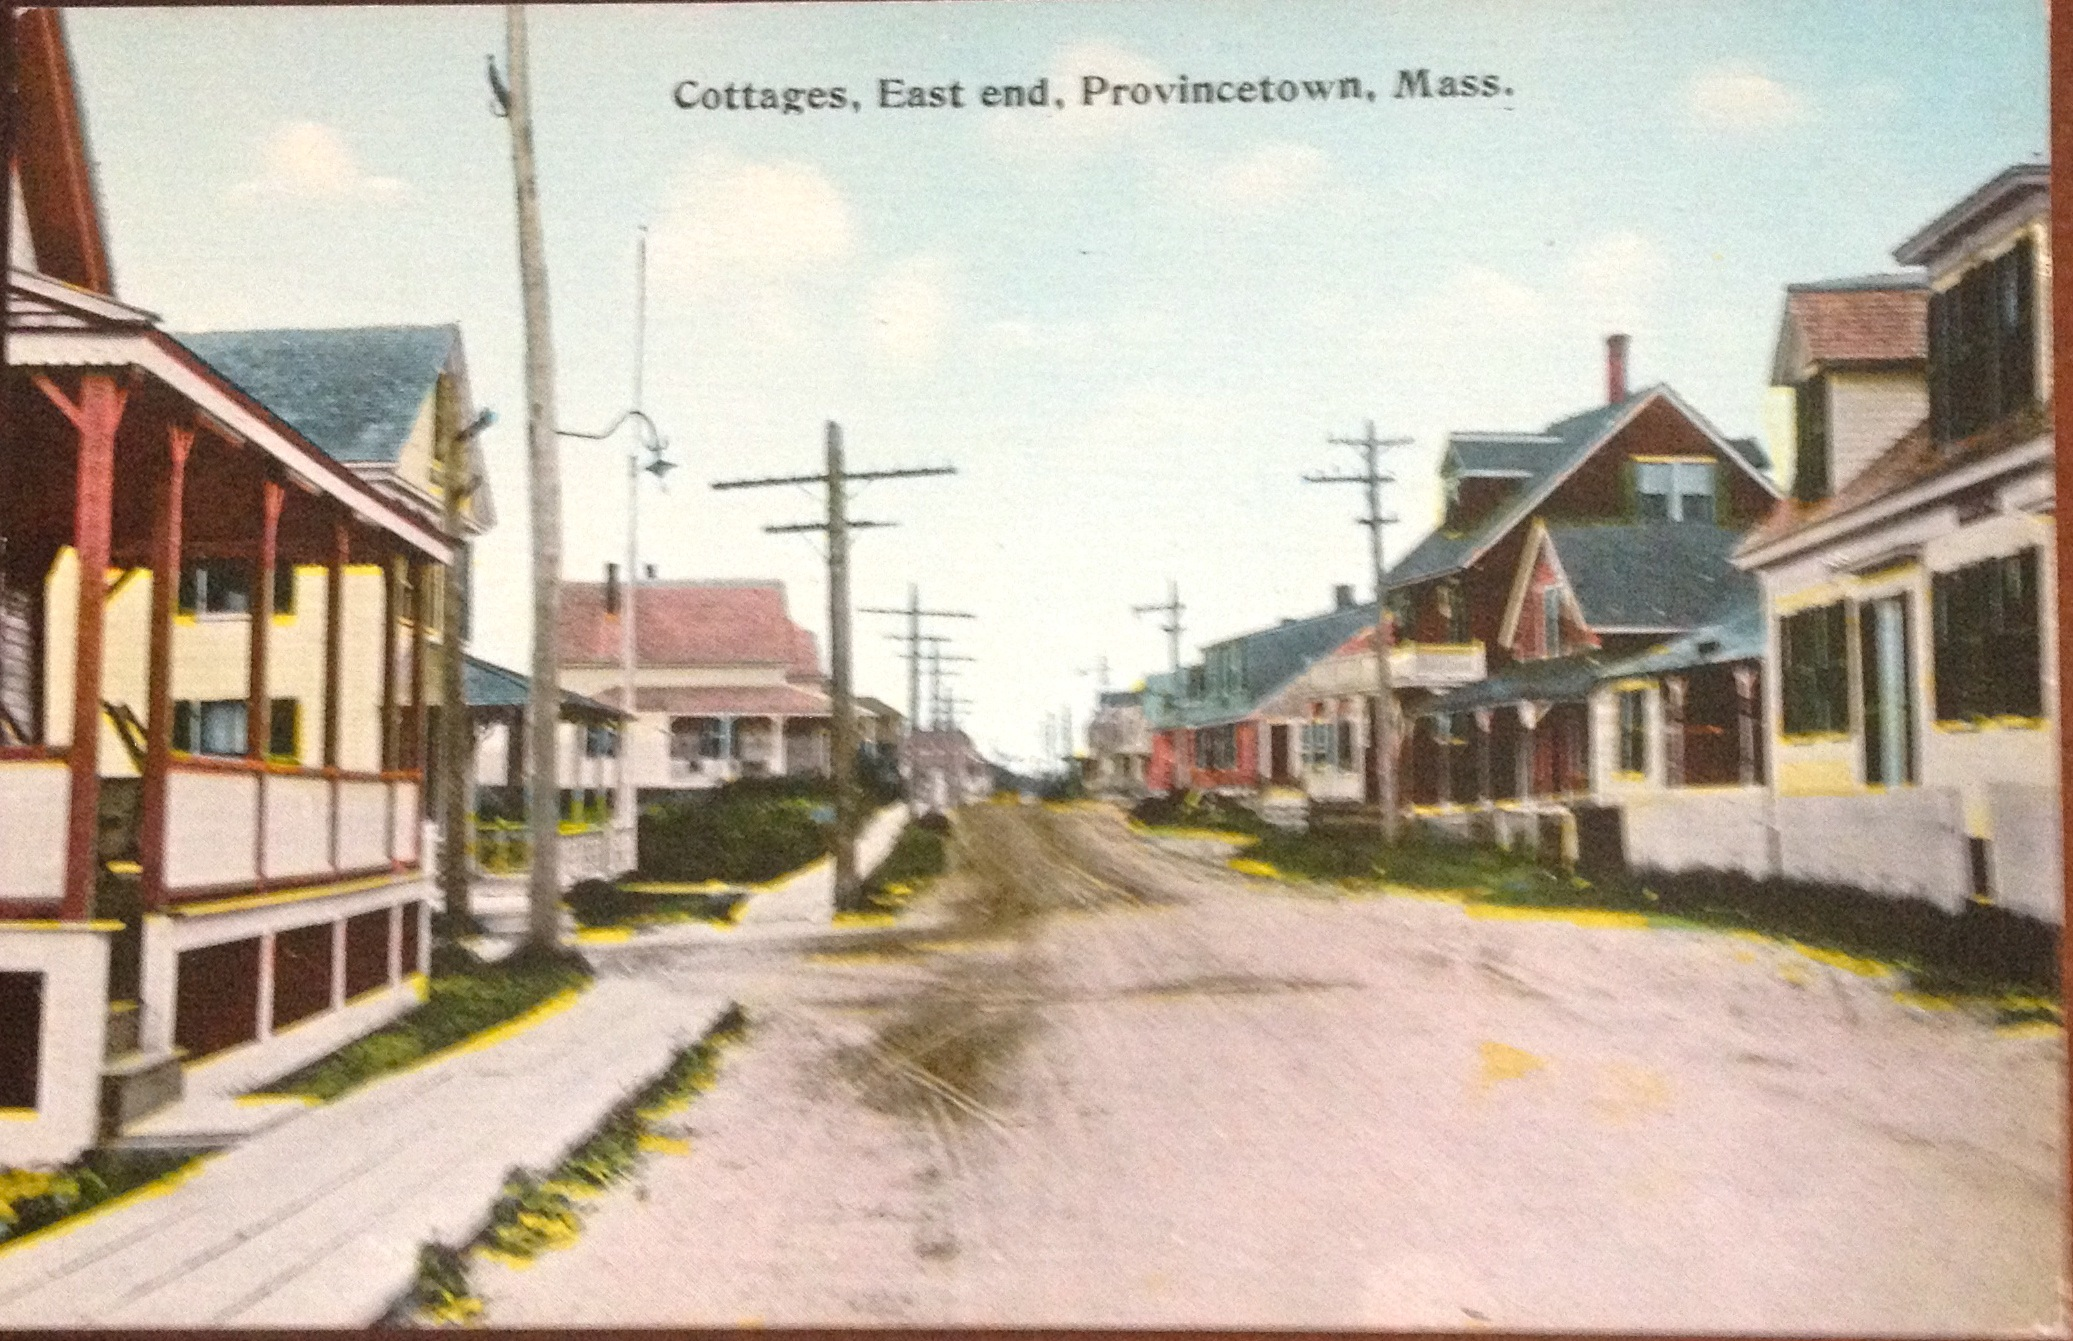 house oldest remaininginprovincetown cape approximately s provincetown full cottages in provincetowns built a ma